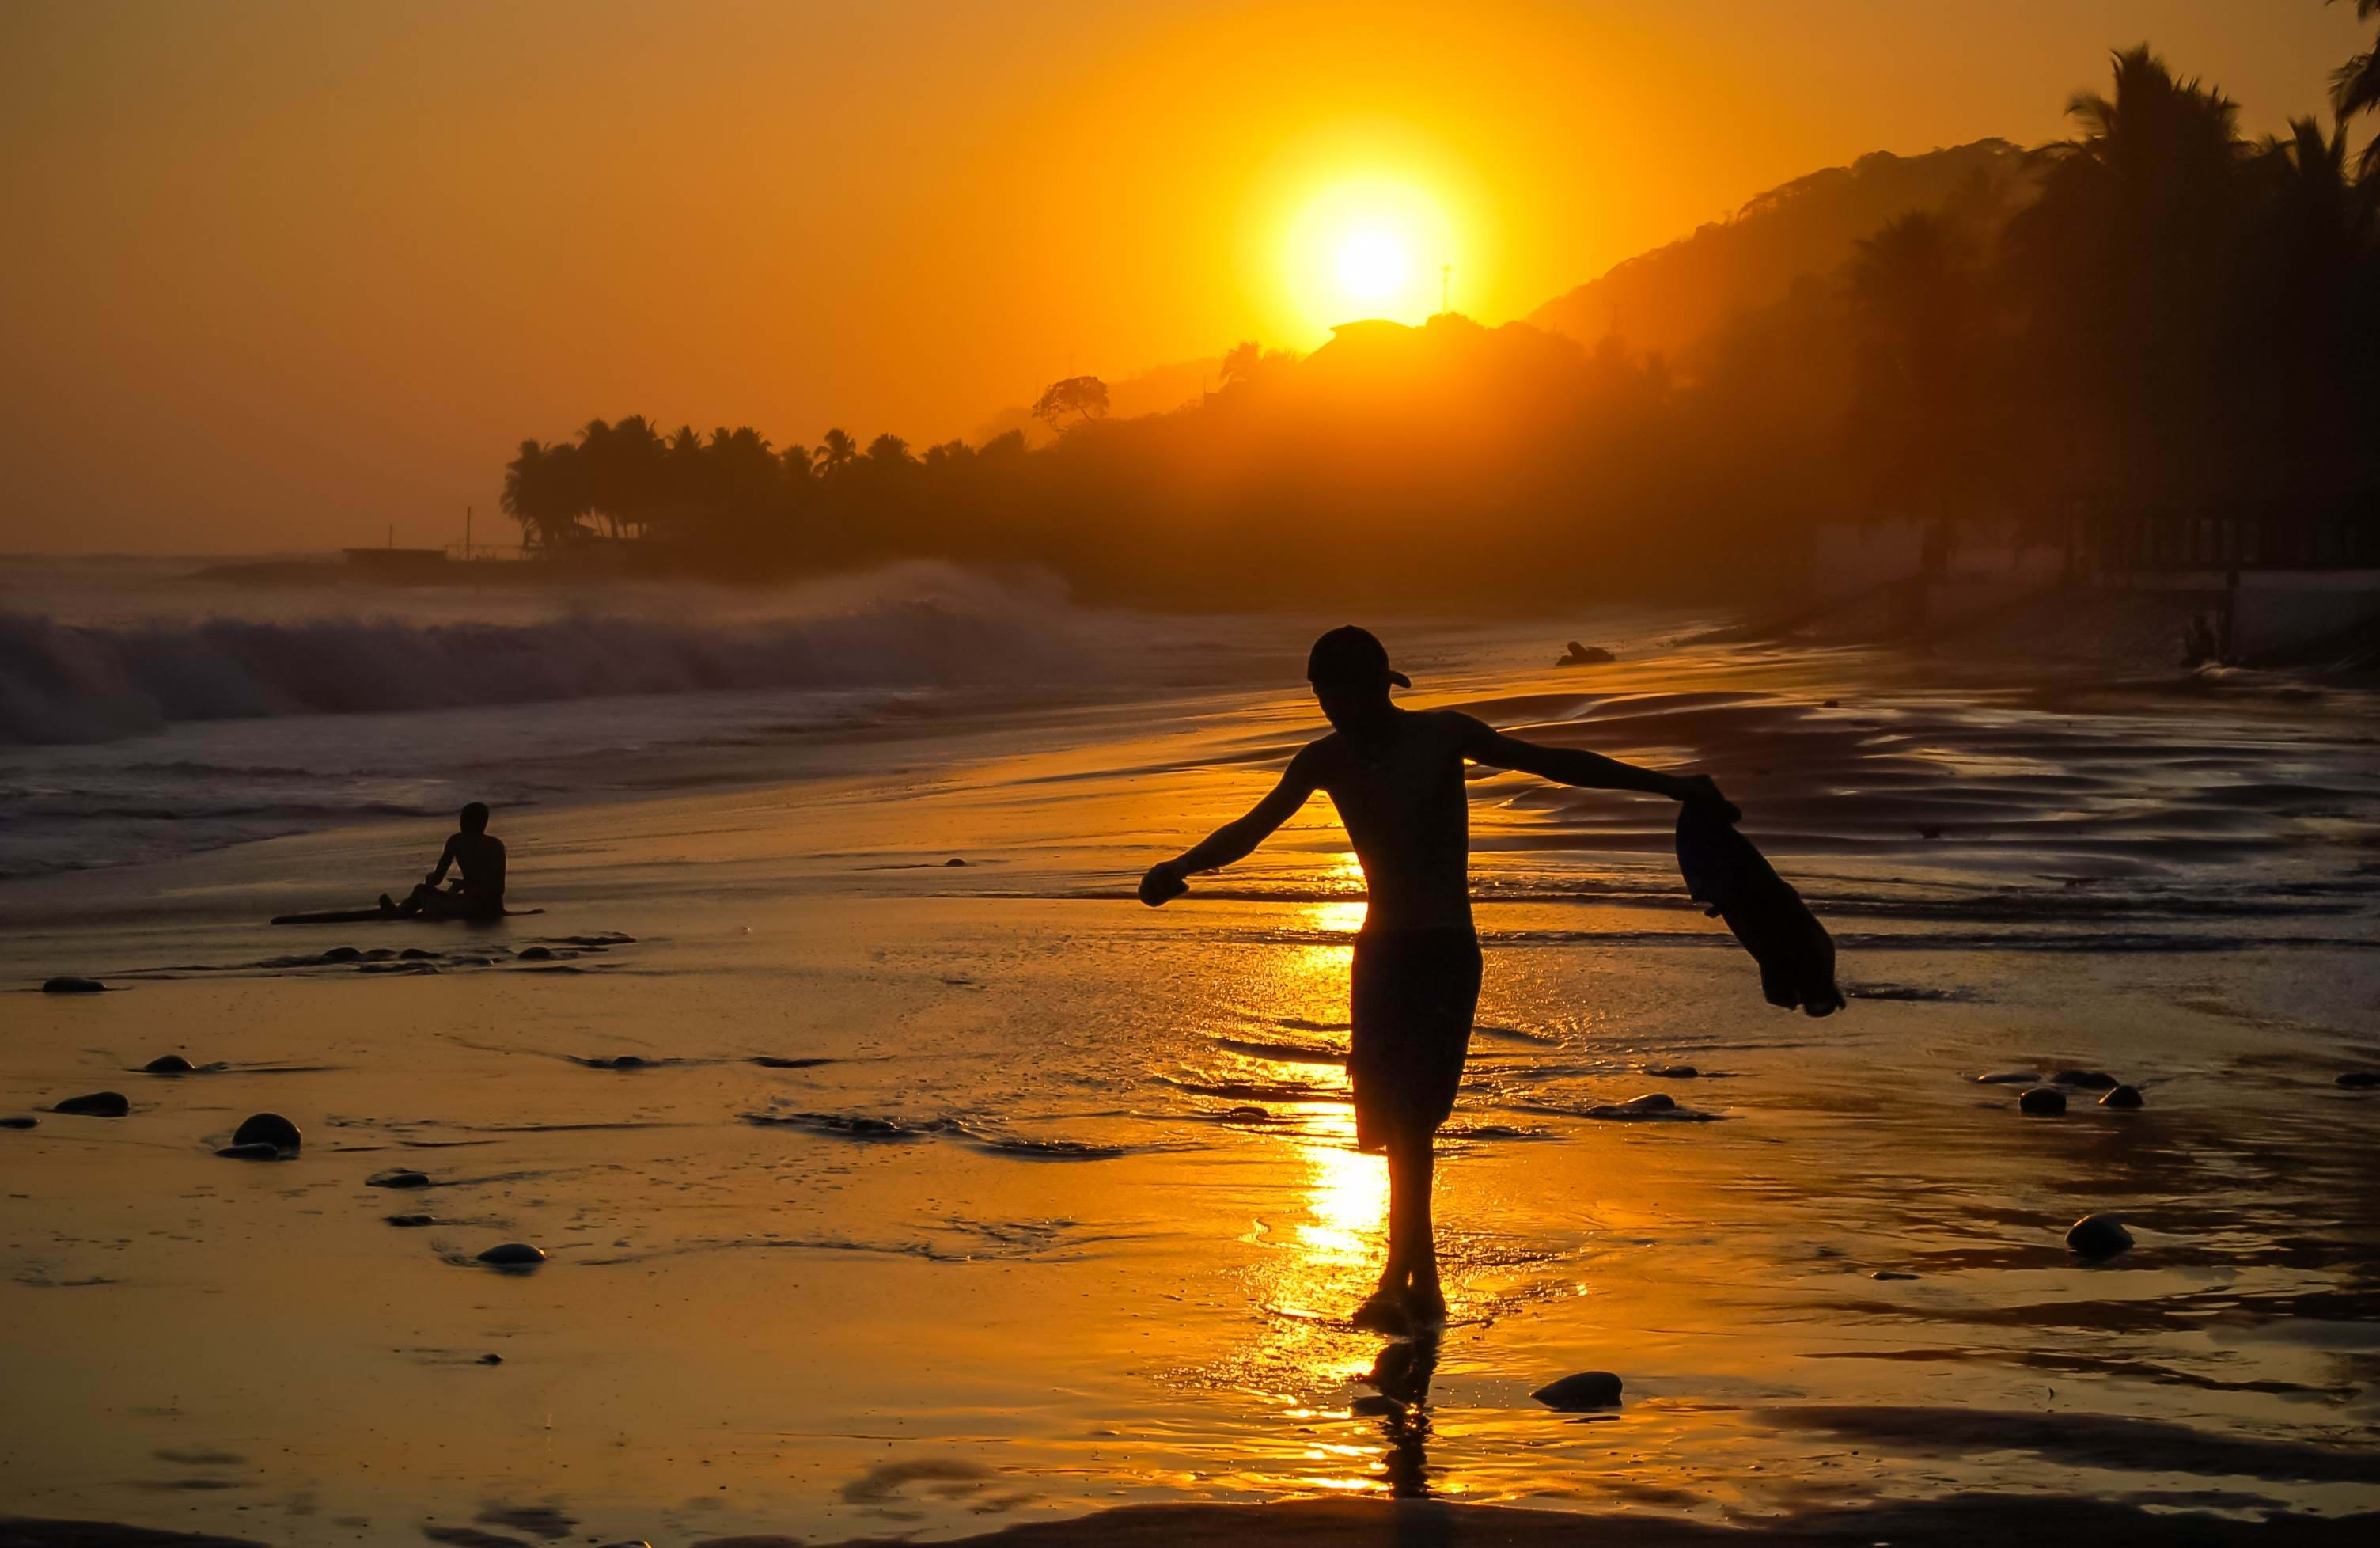 el-salvador-beach-at-sunset